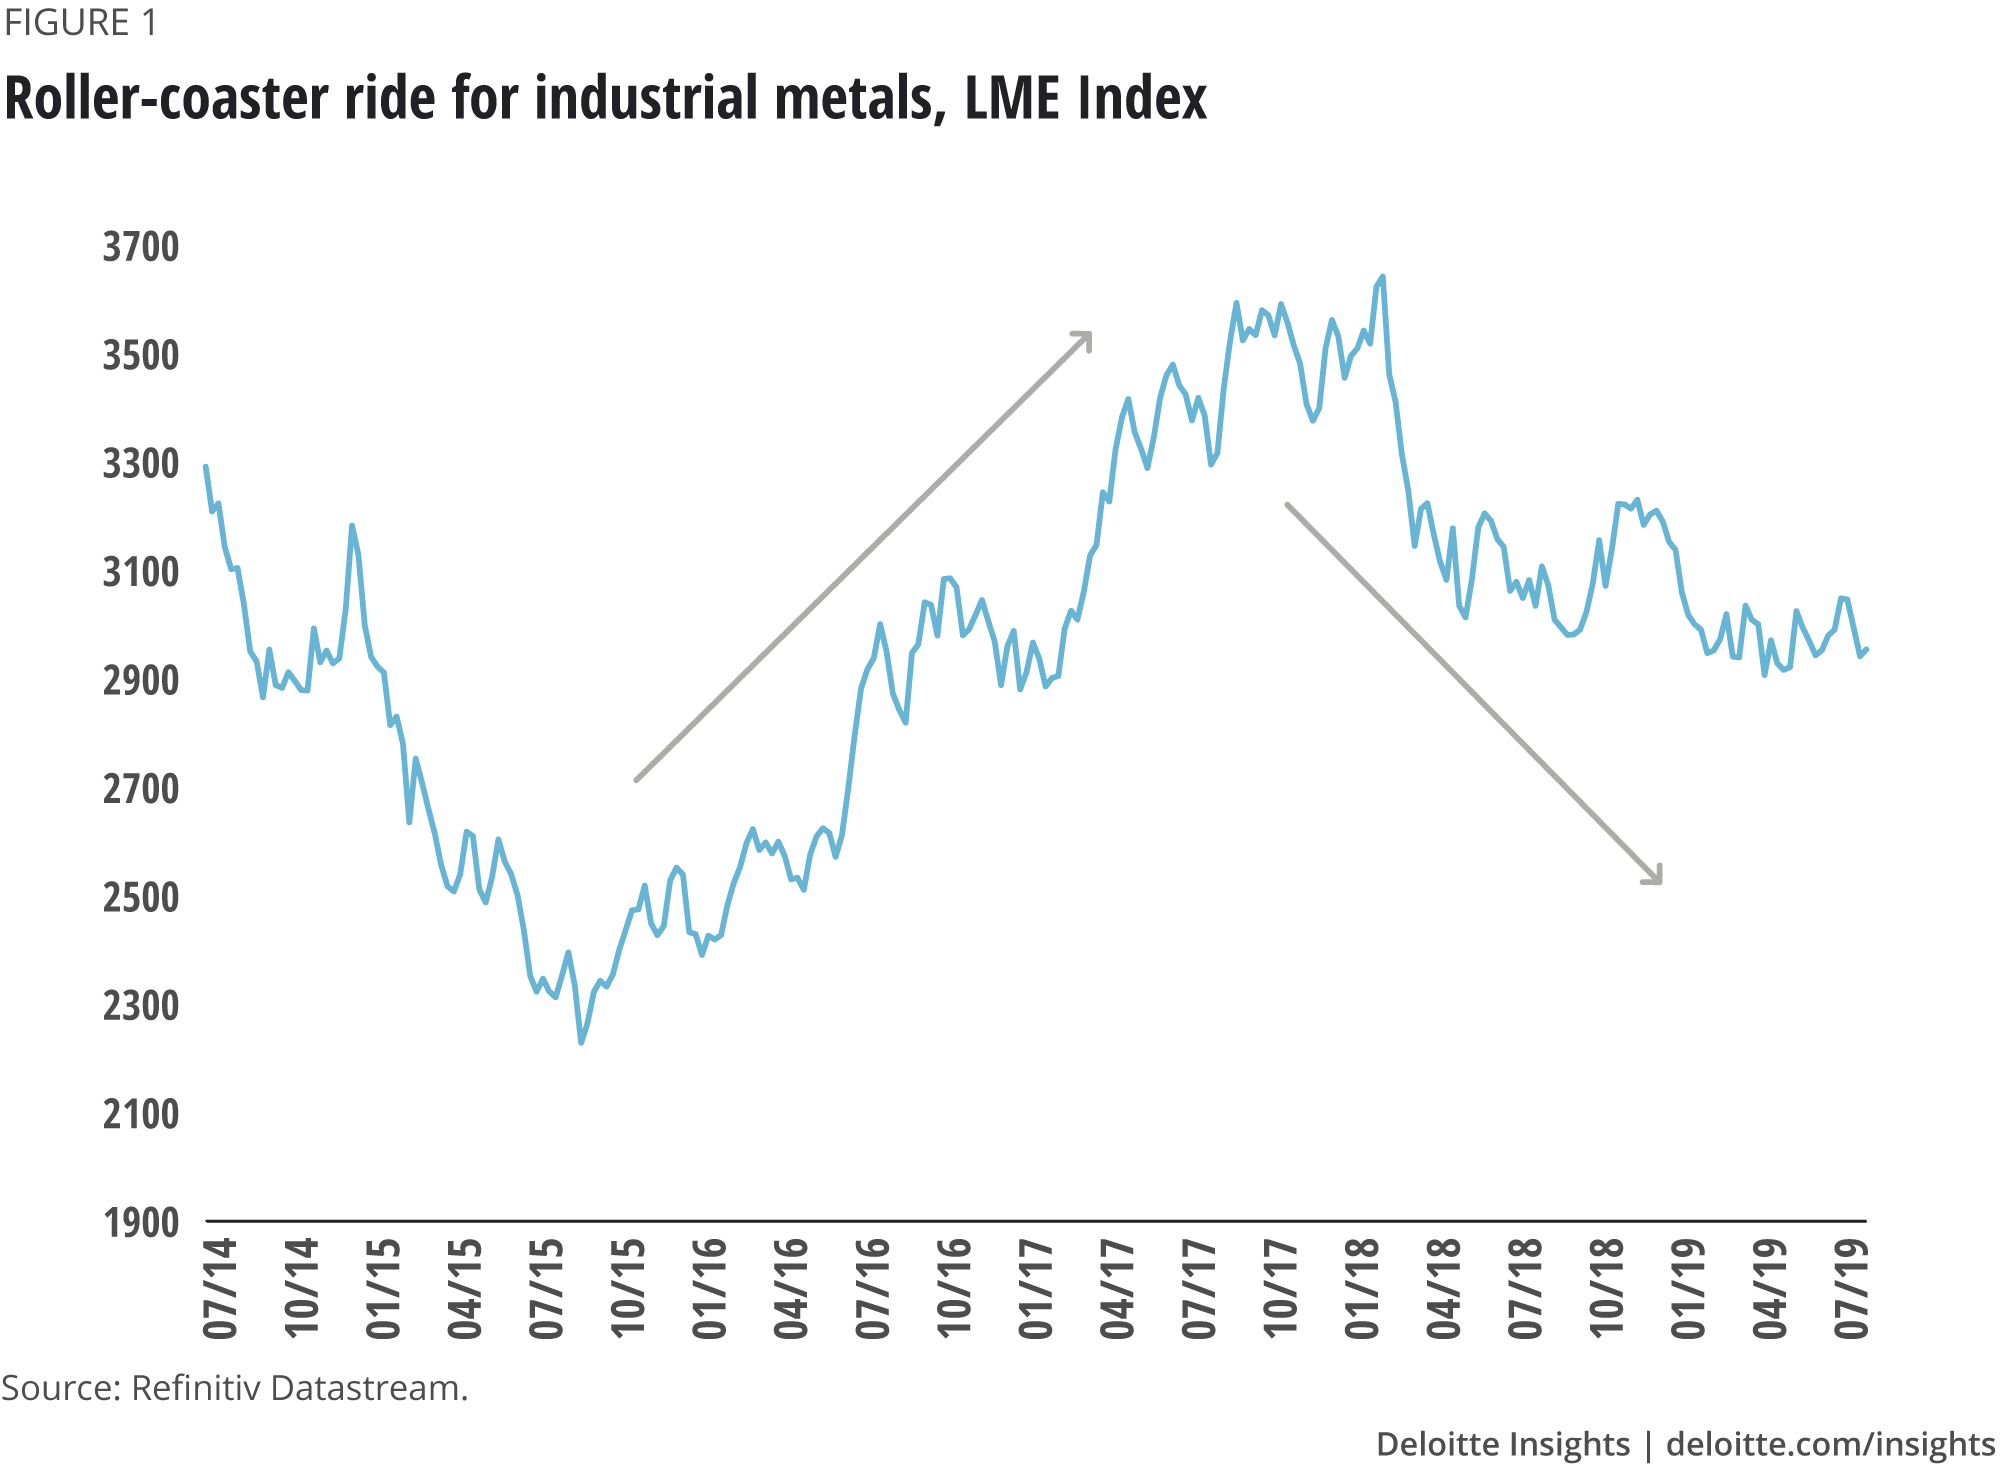 Rollercoaster ride for industrial metals, LME Index